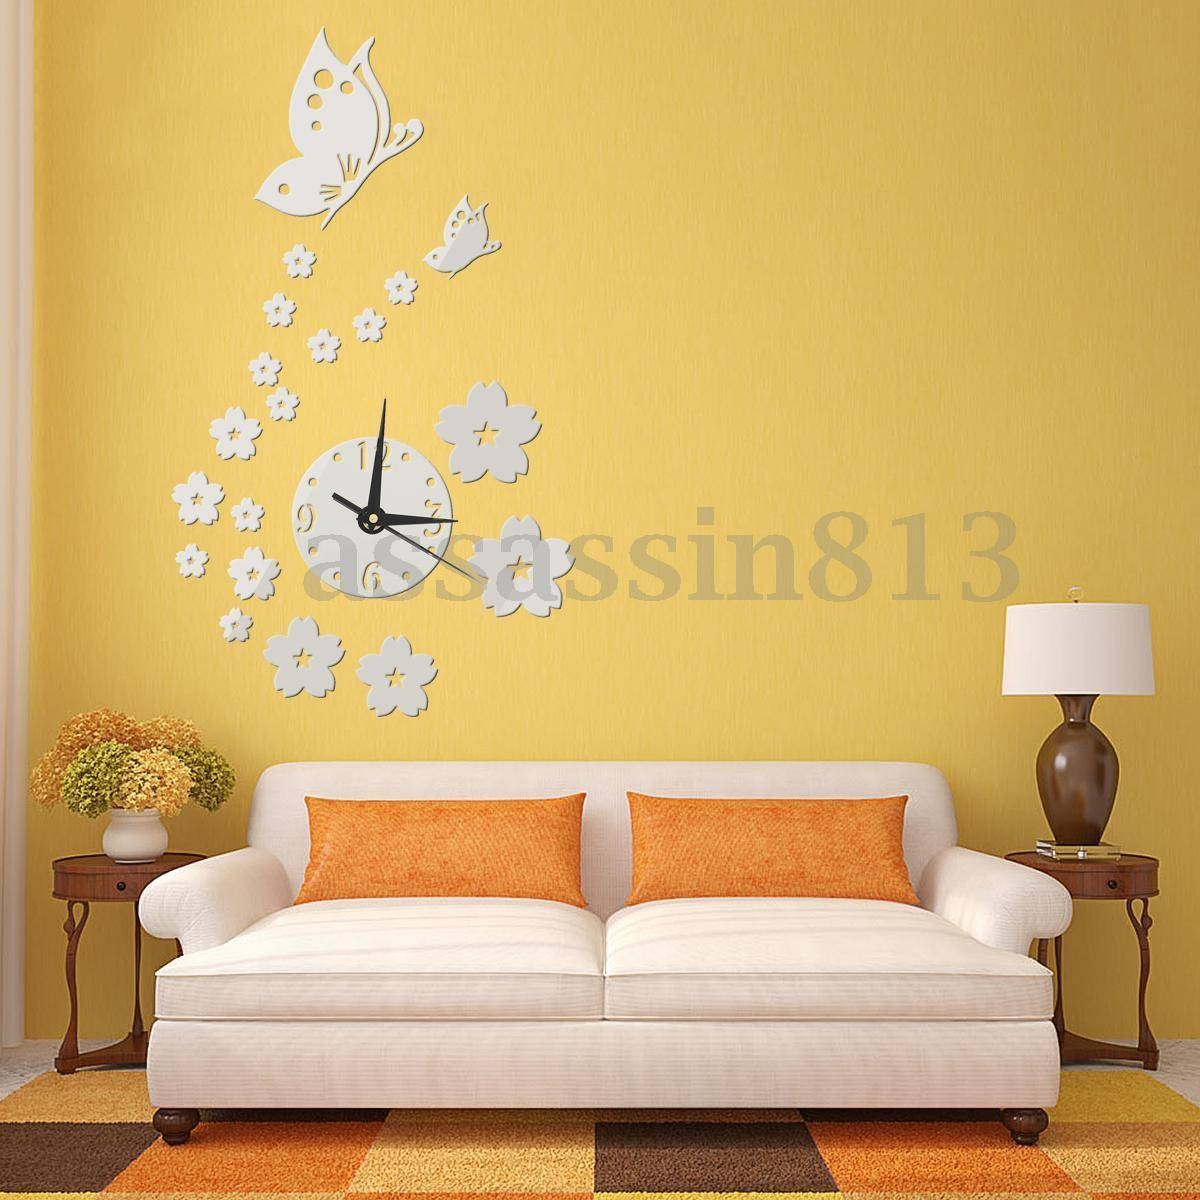 Removable Butterfly Wall Clock Diy 3D Sticker Home Office Room Within Recent 3D Removable Butterfly Wall Art Stickers (Gallery 16 of 20)